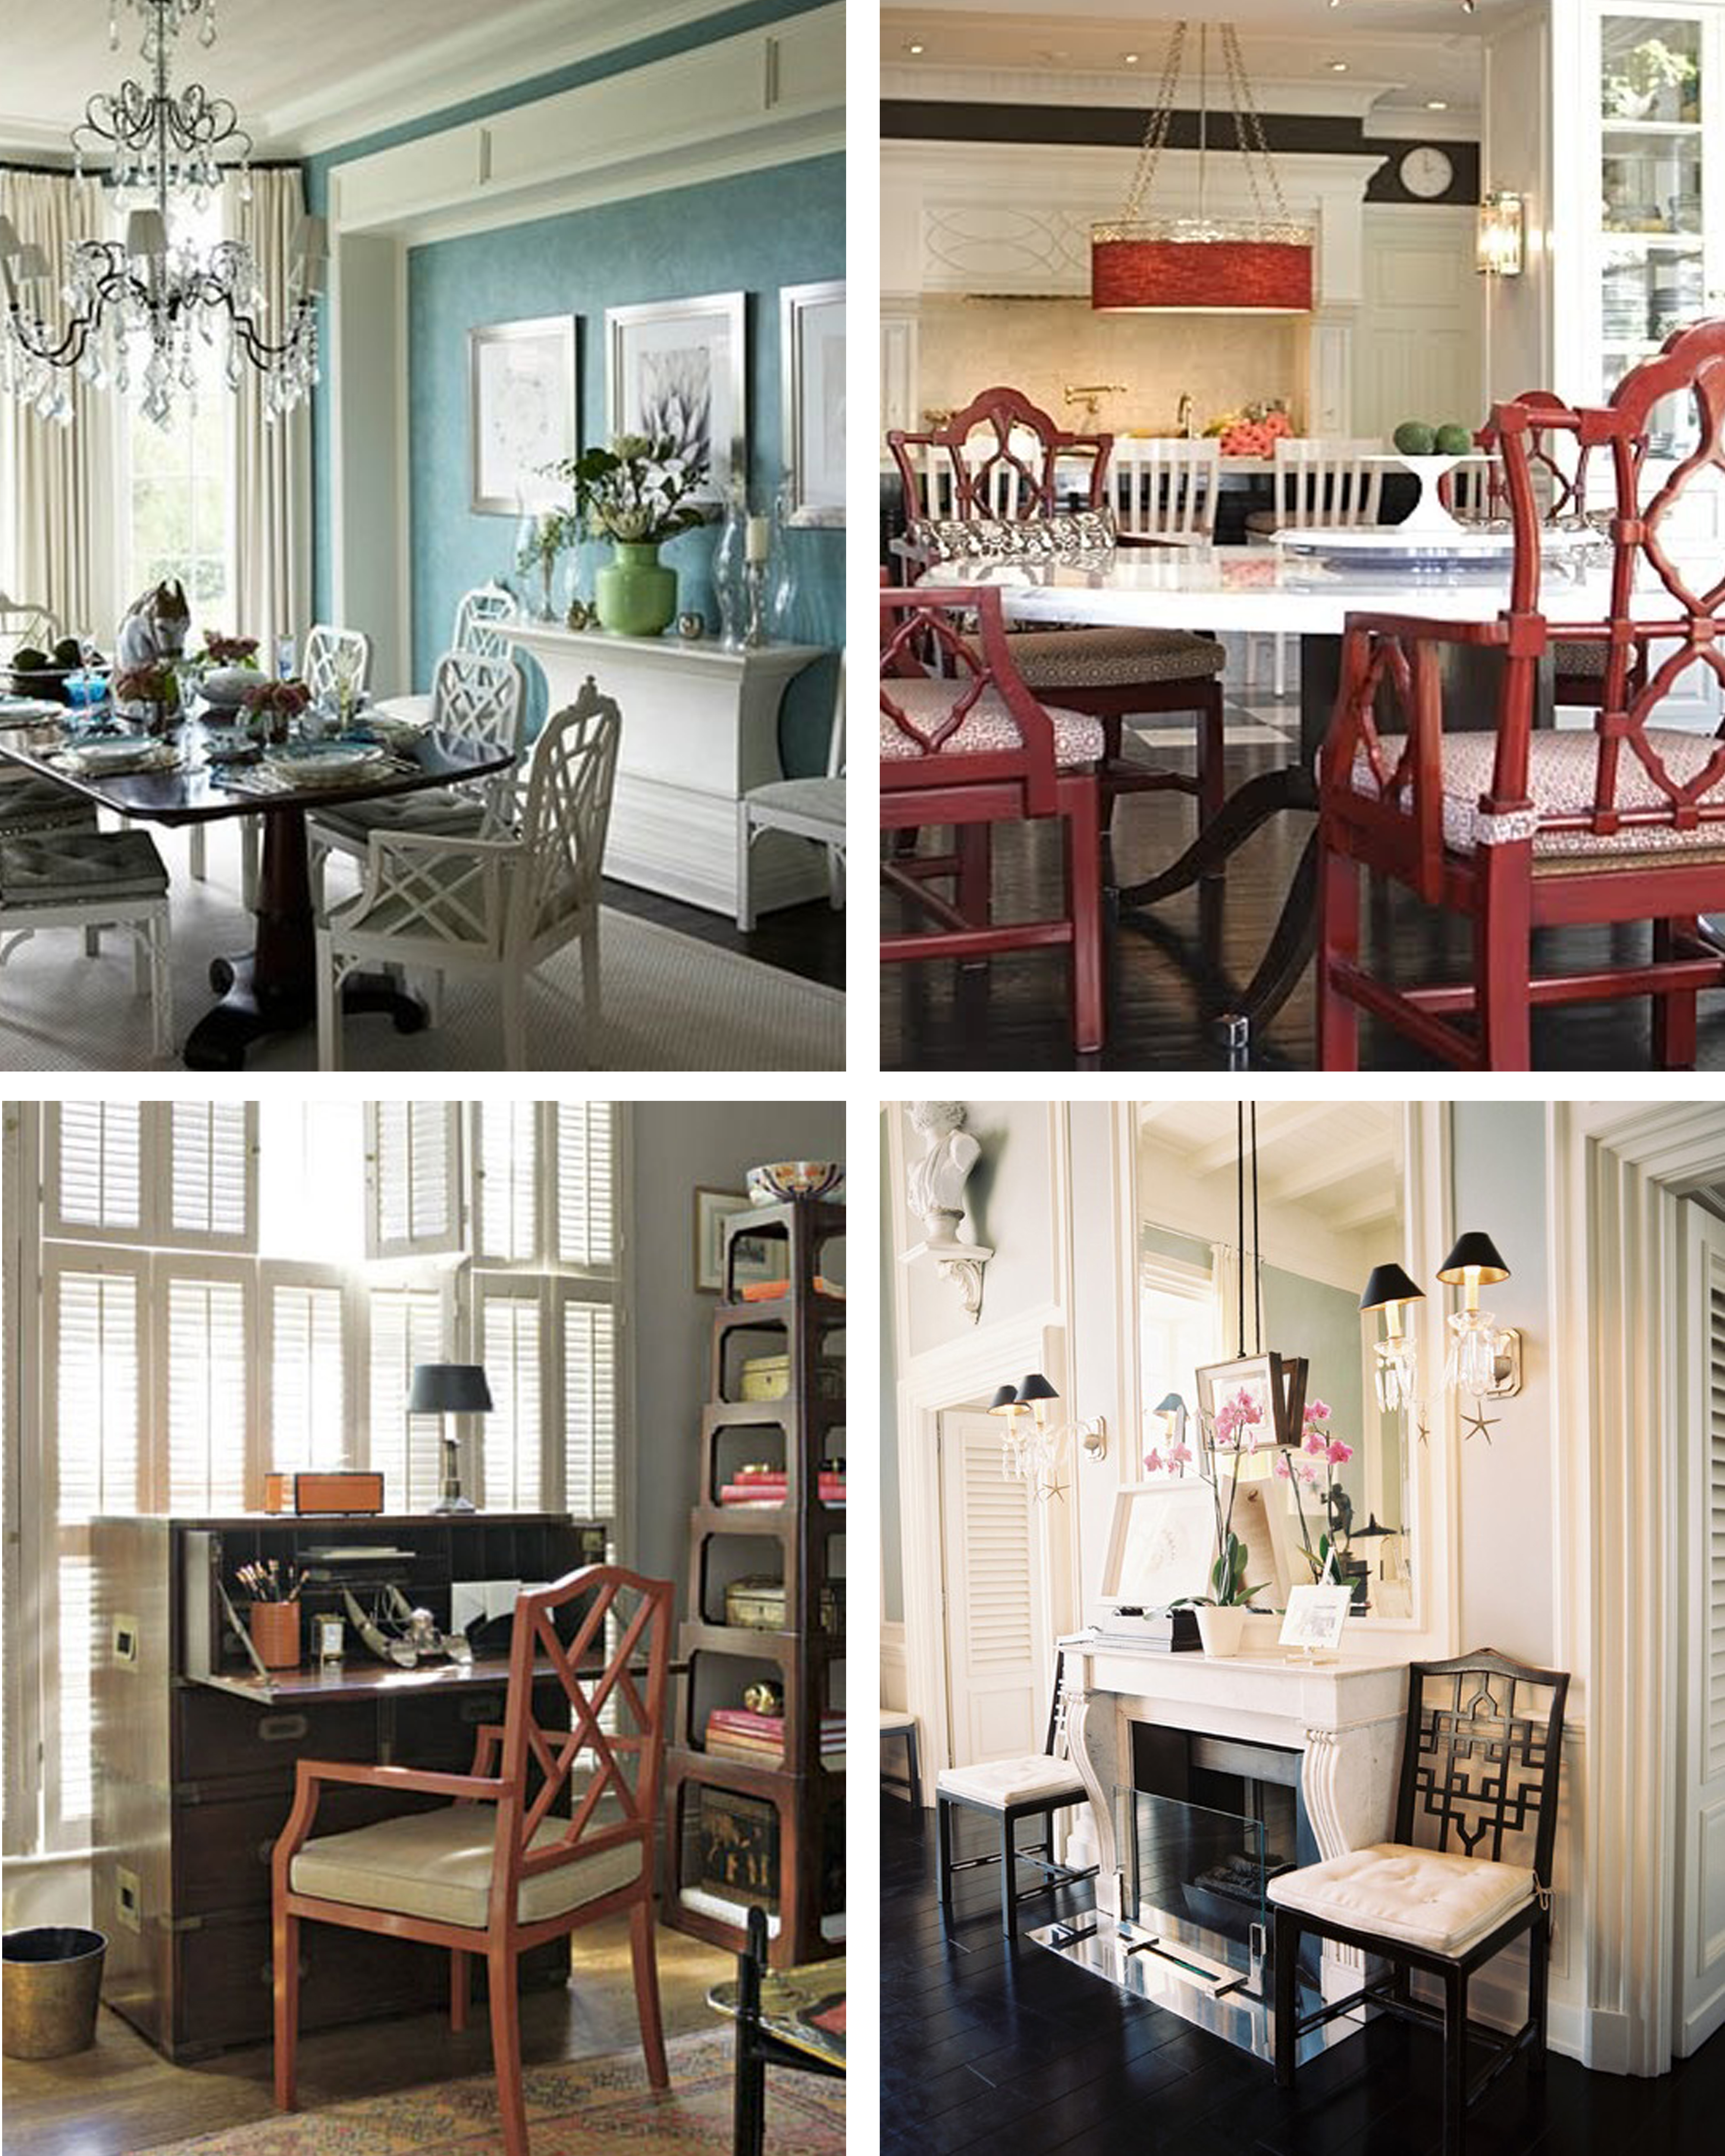 north carolina interior designer and author kathryn greeley uses chinese chippendale chairs in design